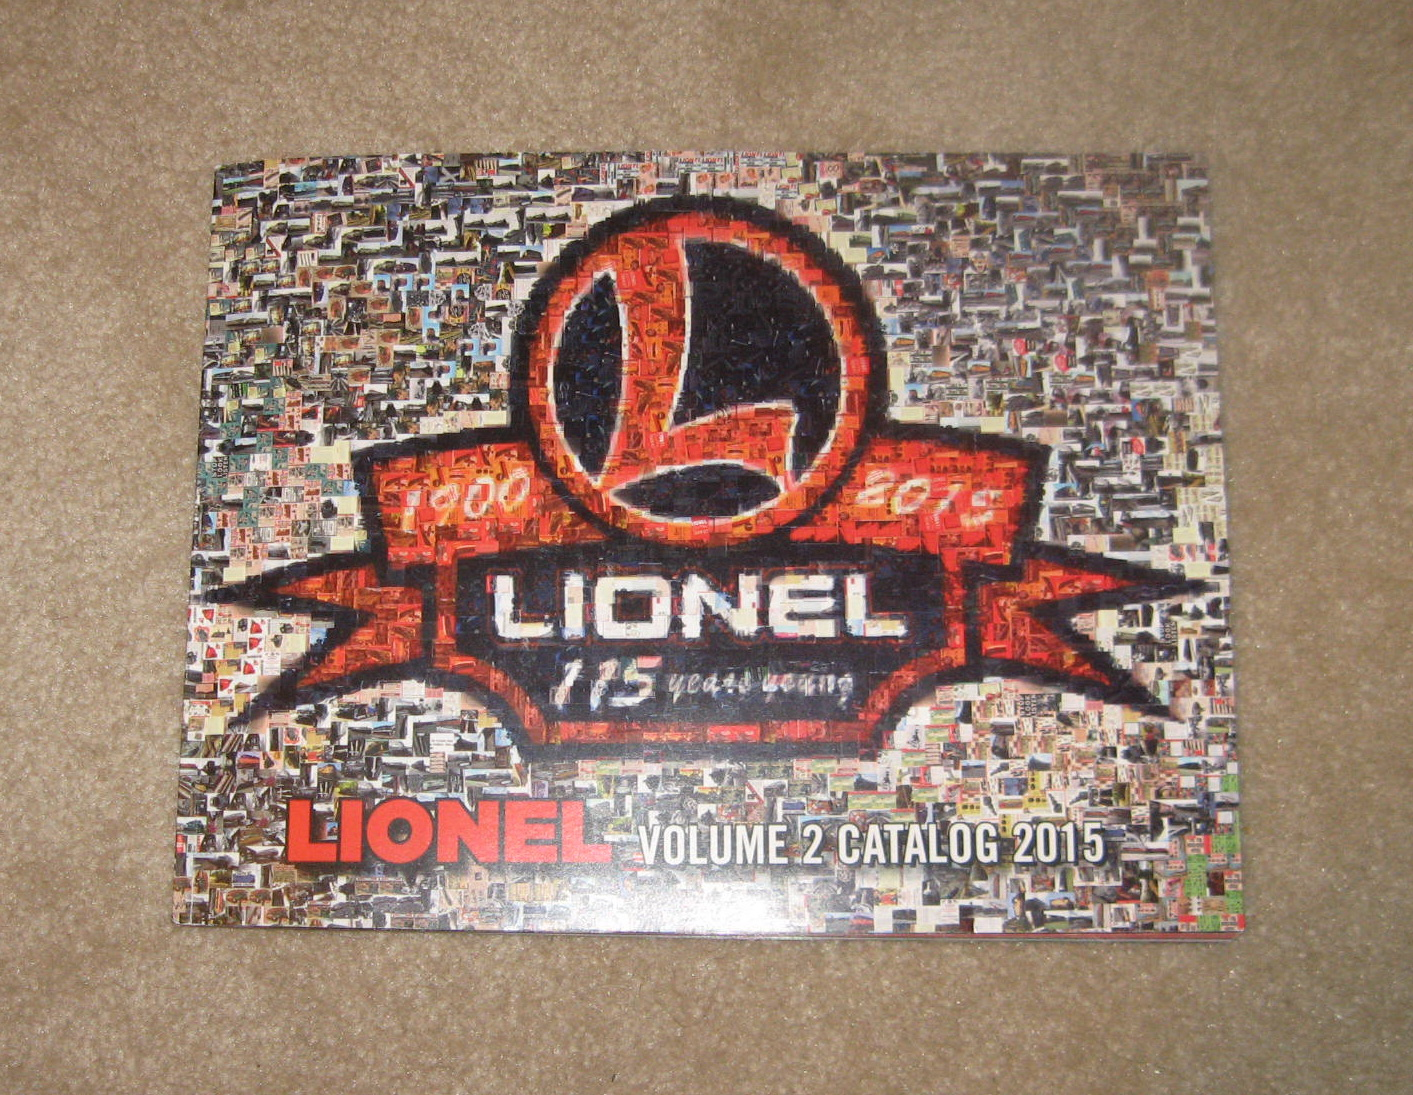 2015 Lionel Trains Volume 2 Catalog. Mint Condition.